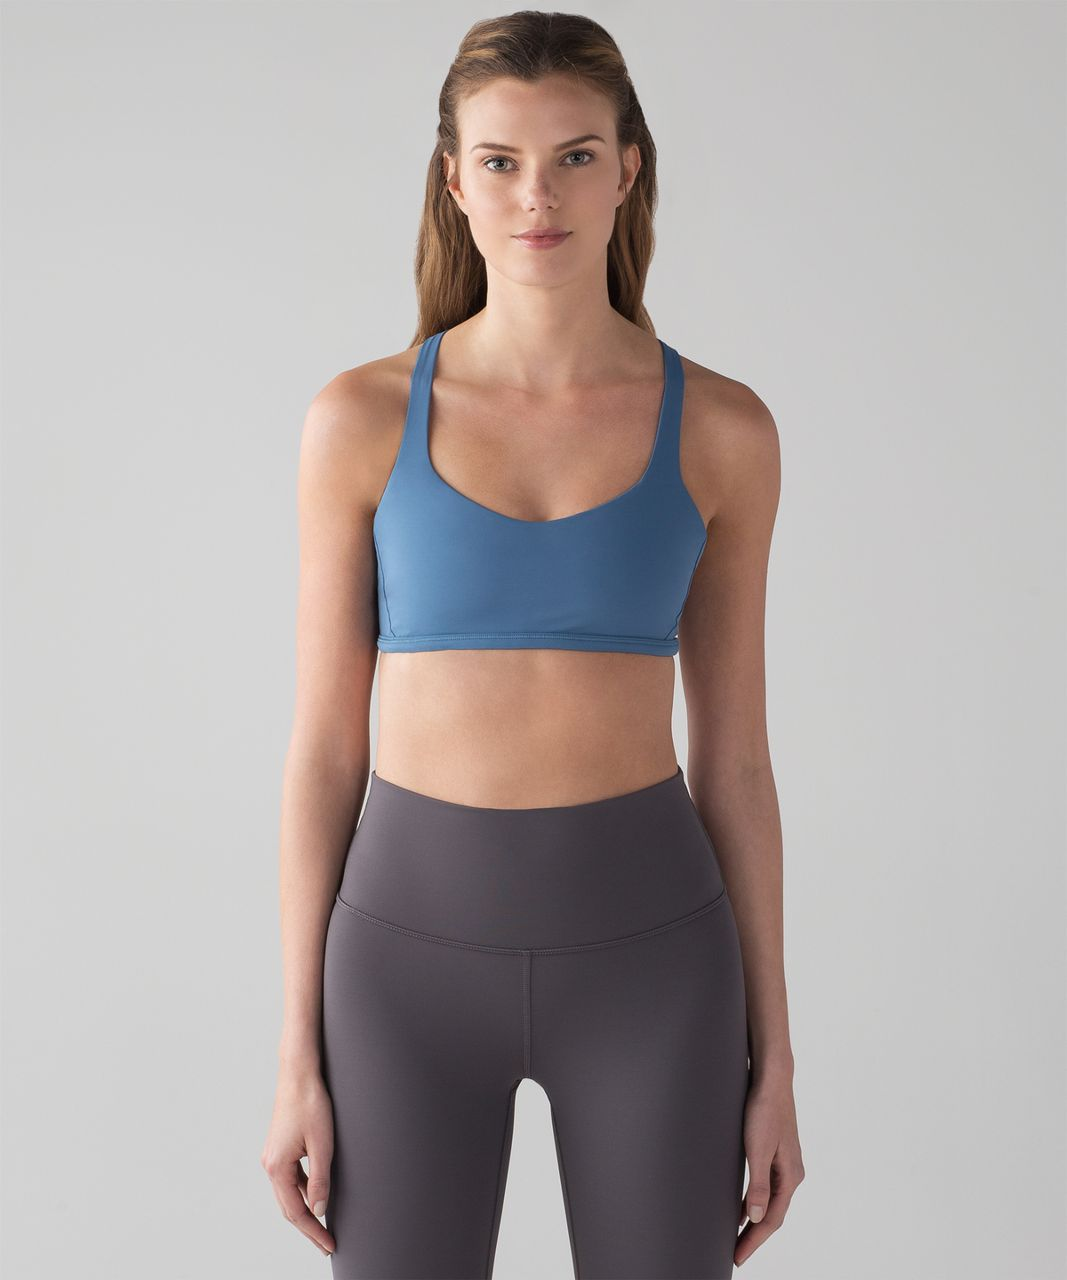 Lululemon Free To Be Zen Bra - Illuminight